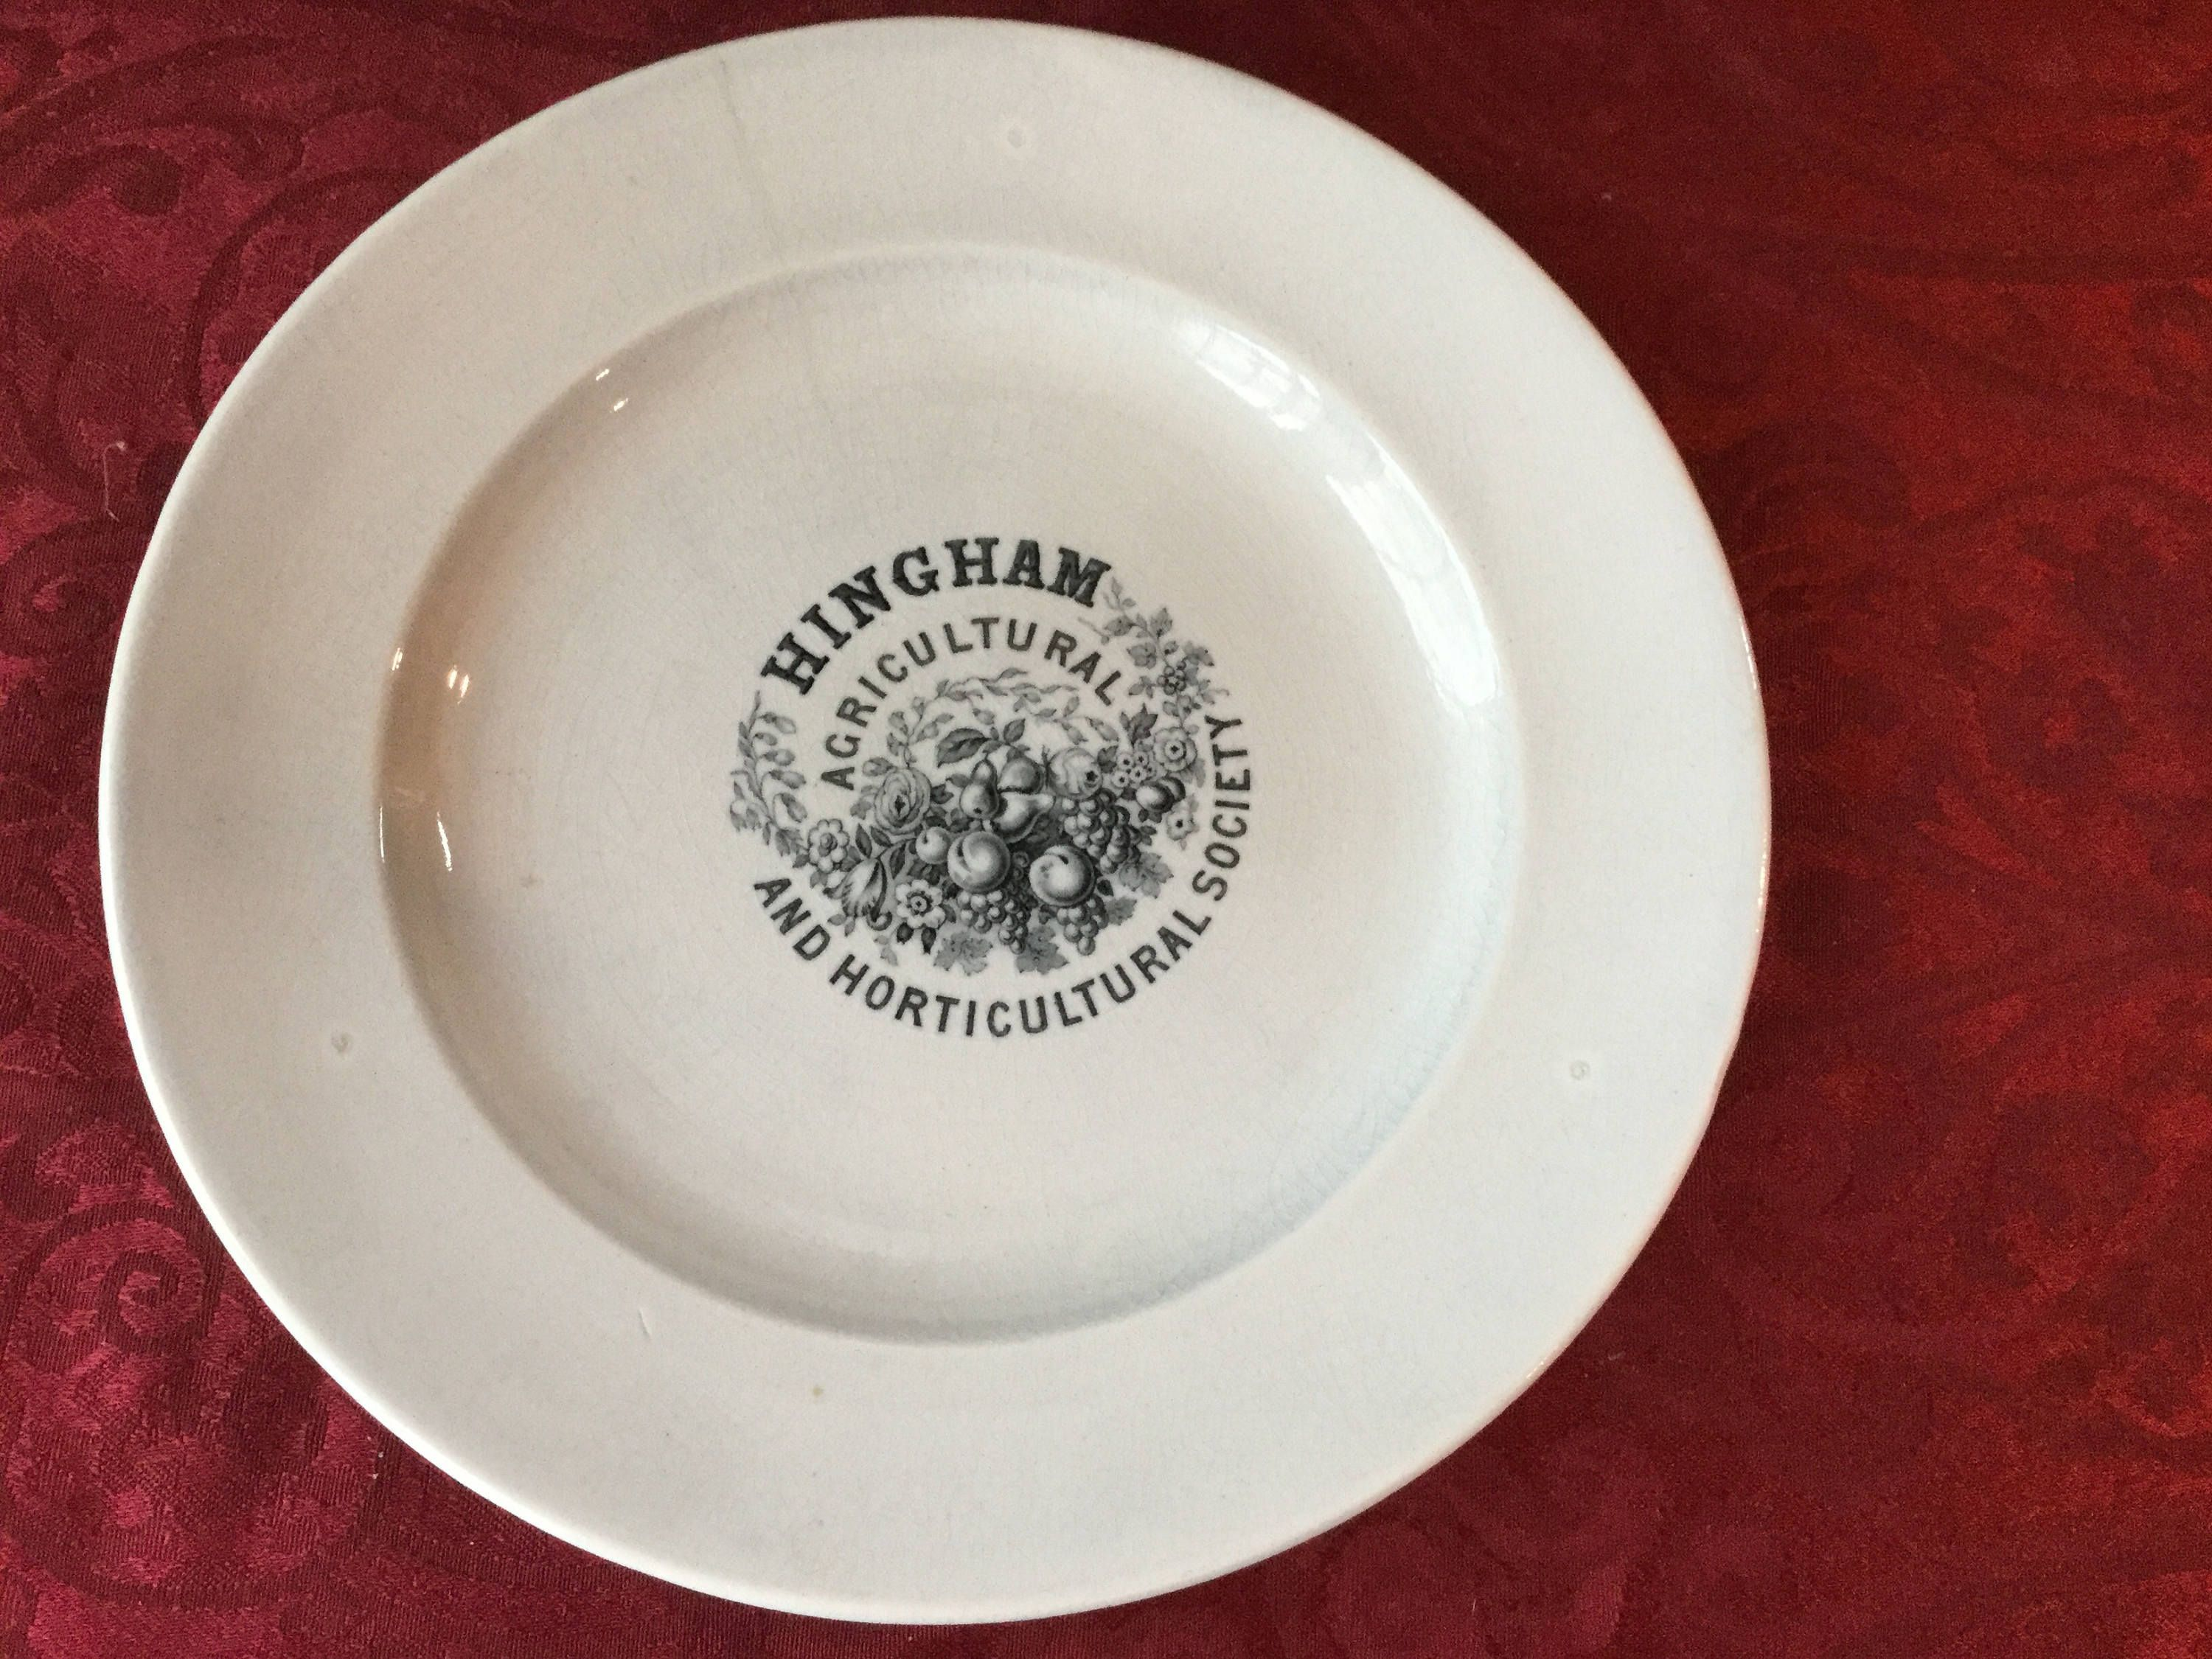 Old Hall Earthenware Hingham Agricultural and Horticultural Society Dinner Plate 1800u0027s by SquireCollectibles on Etsy & Old Hall Earthenware Hingham Agricultural and Horticultural Society ...